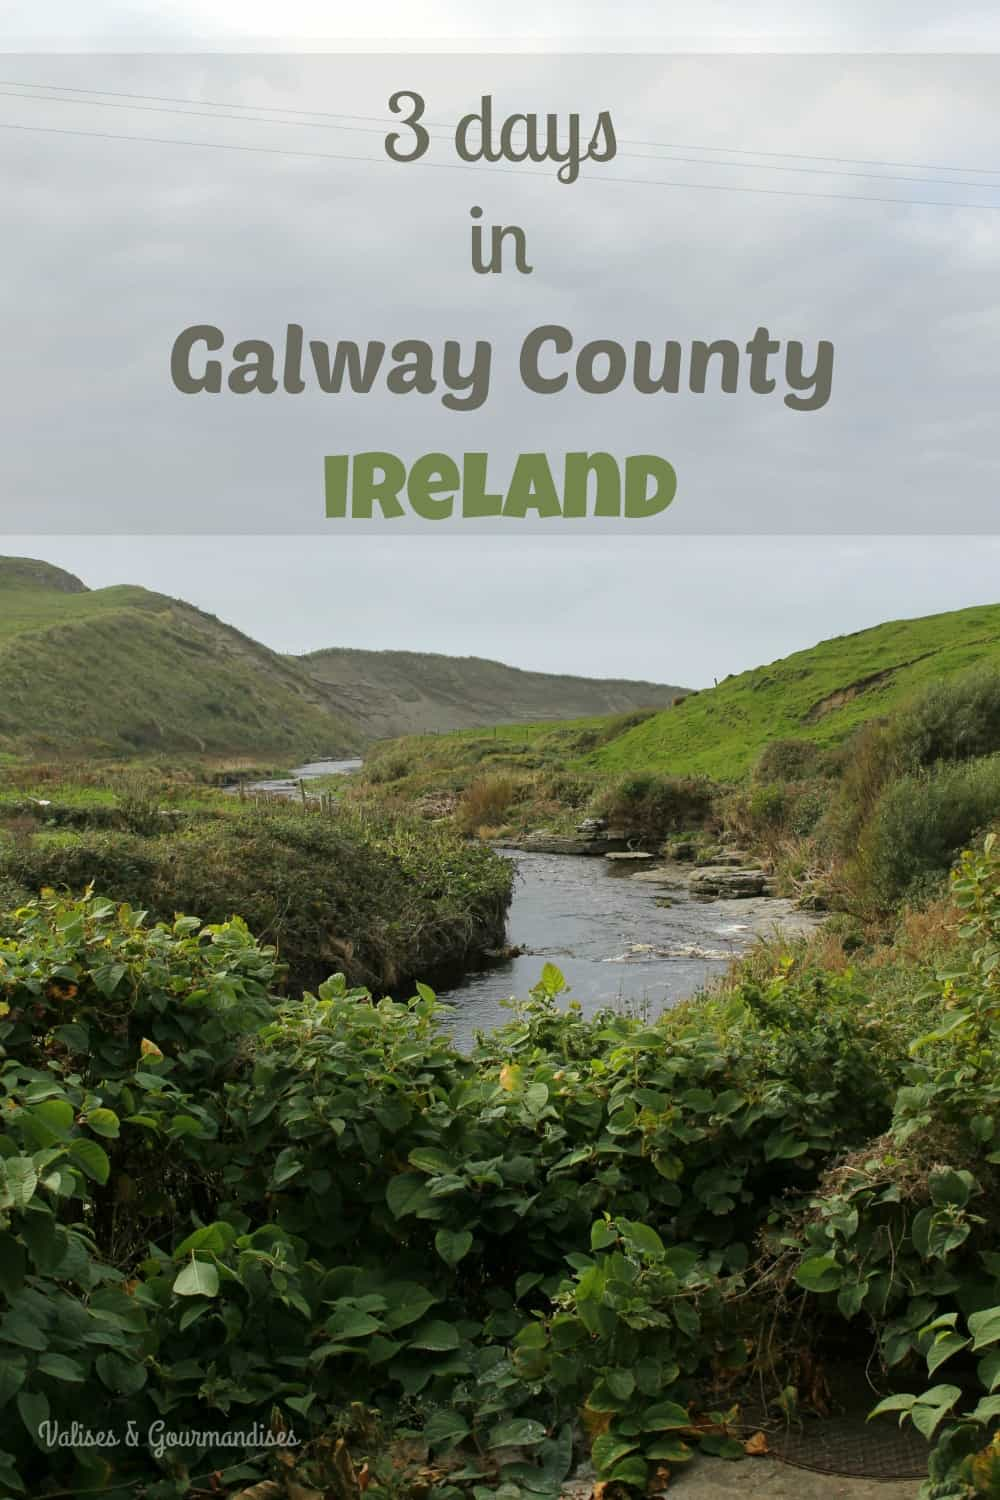 Daytrip from Galway County, Ireland